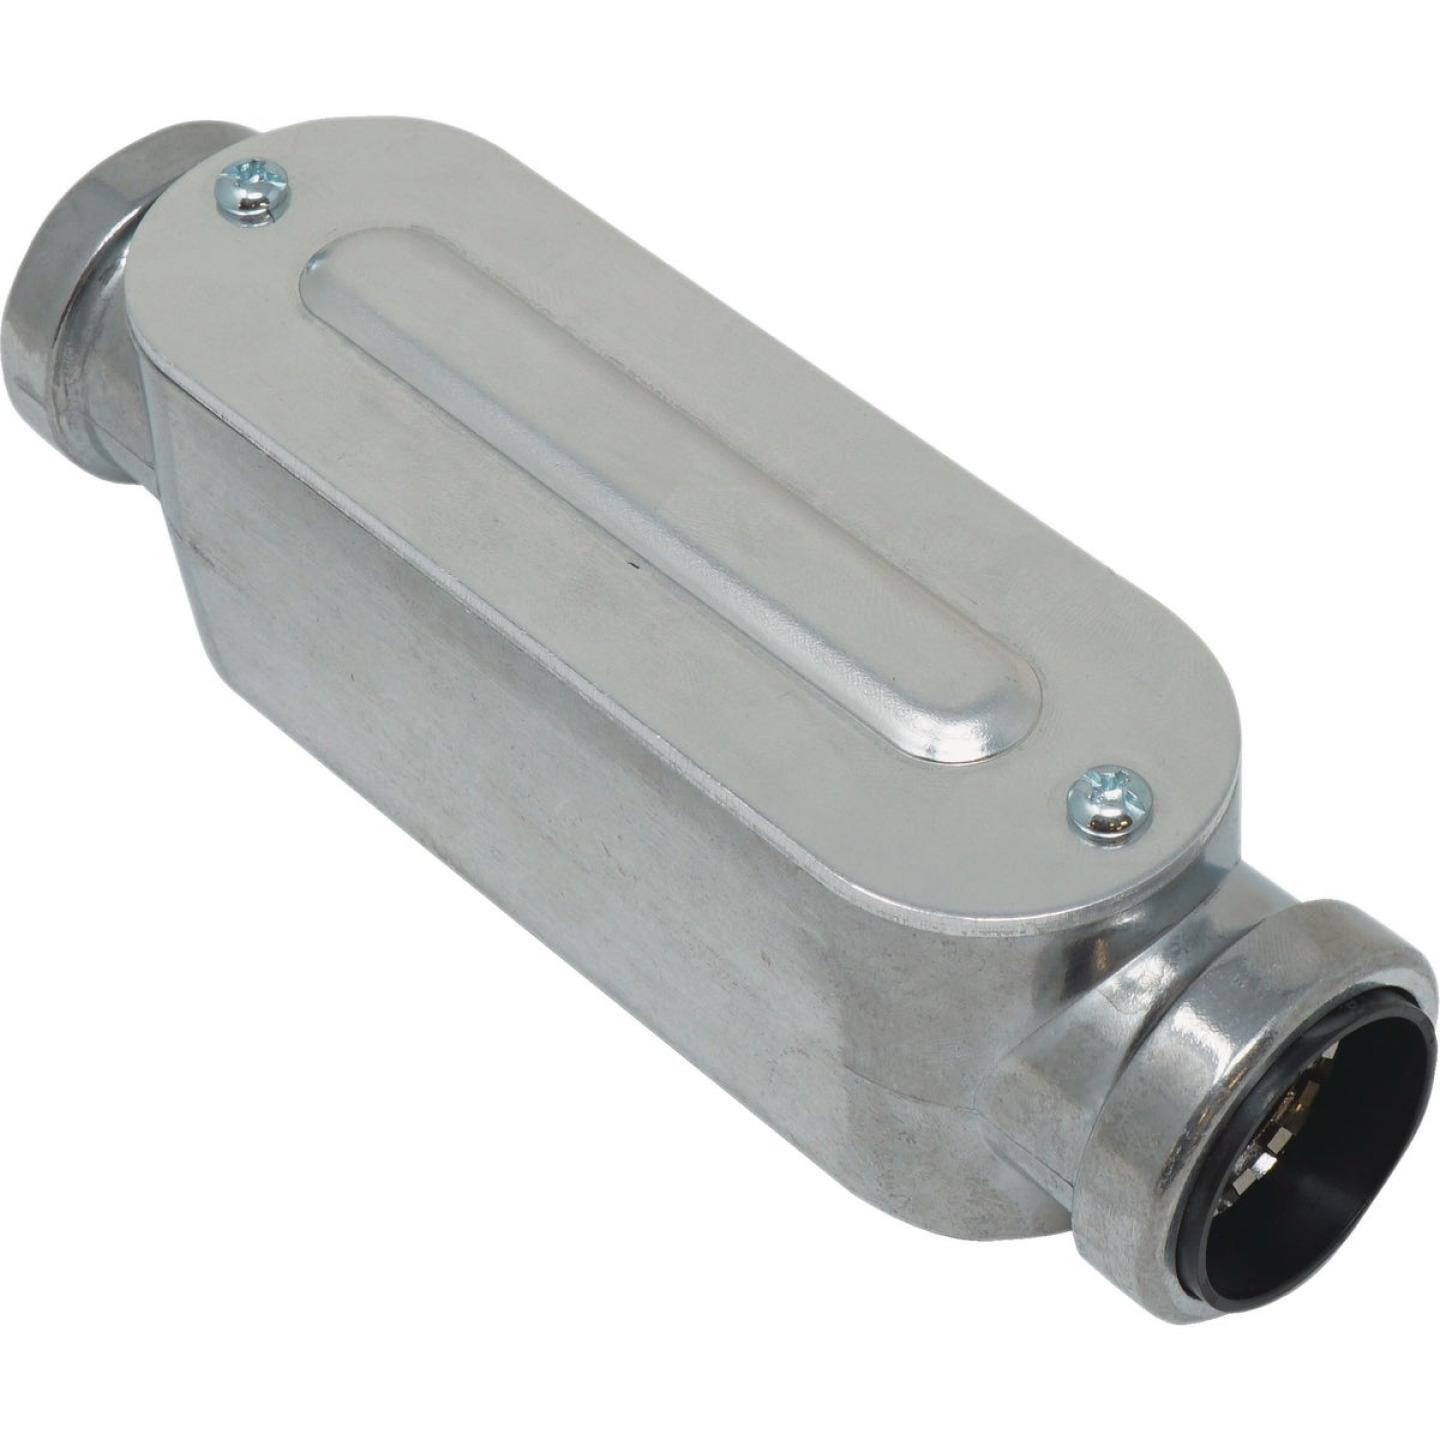 Southwire SimPush 3/4 In. EMT Push-To-Install Type-C Conduit Body Image 1